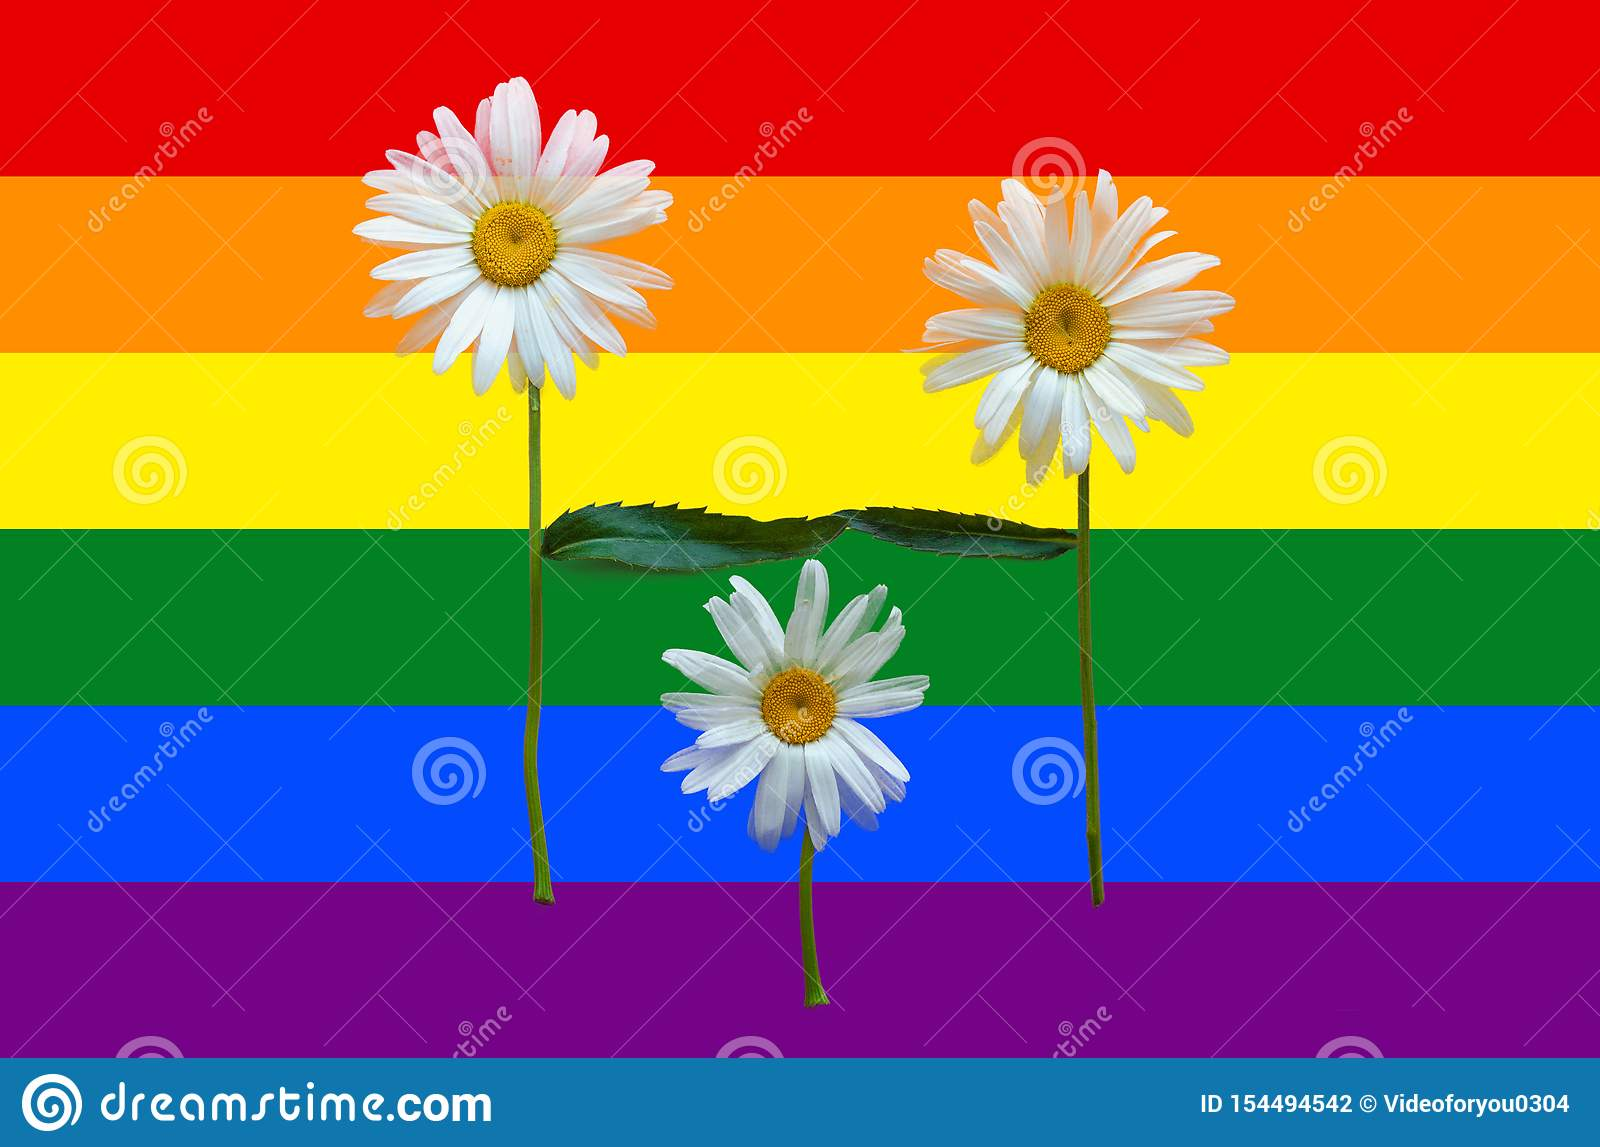 A family of flowers - Dad, Mom and Children. Parents and Child. Couple in love. The concept of adoption of children by same-sex